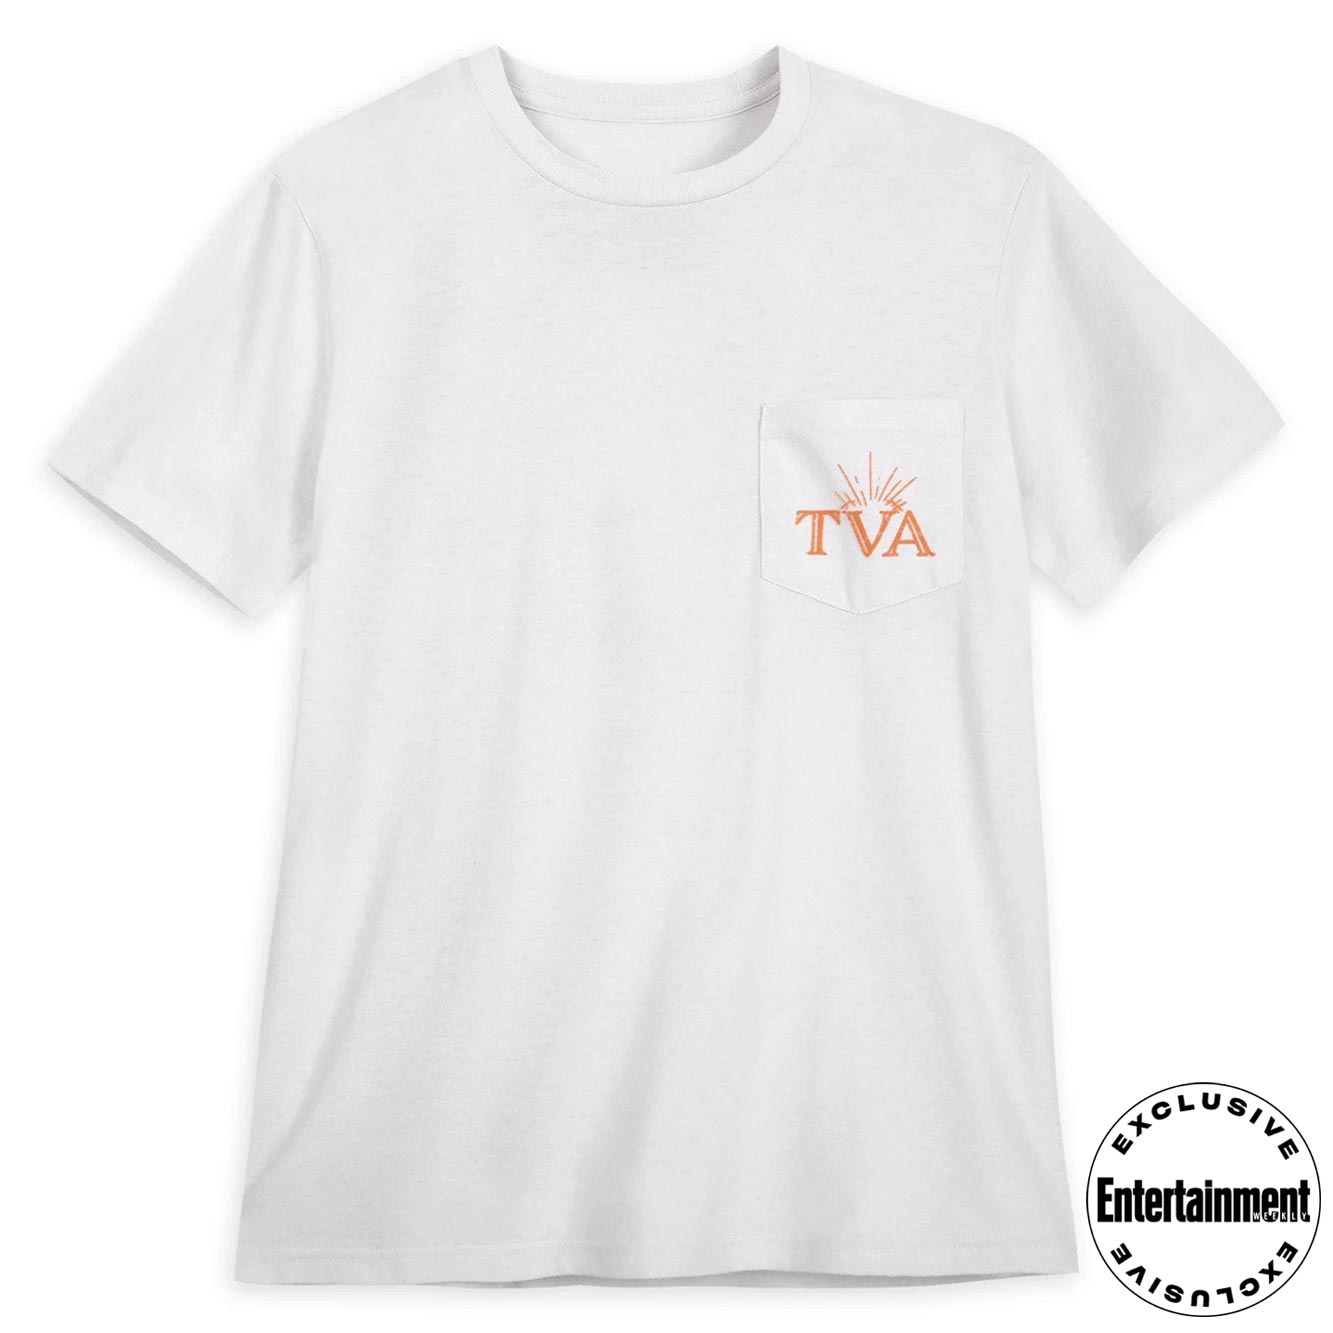 time variance authority t-shirt